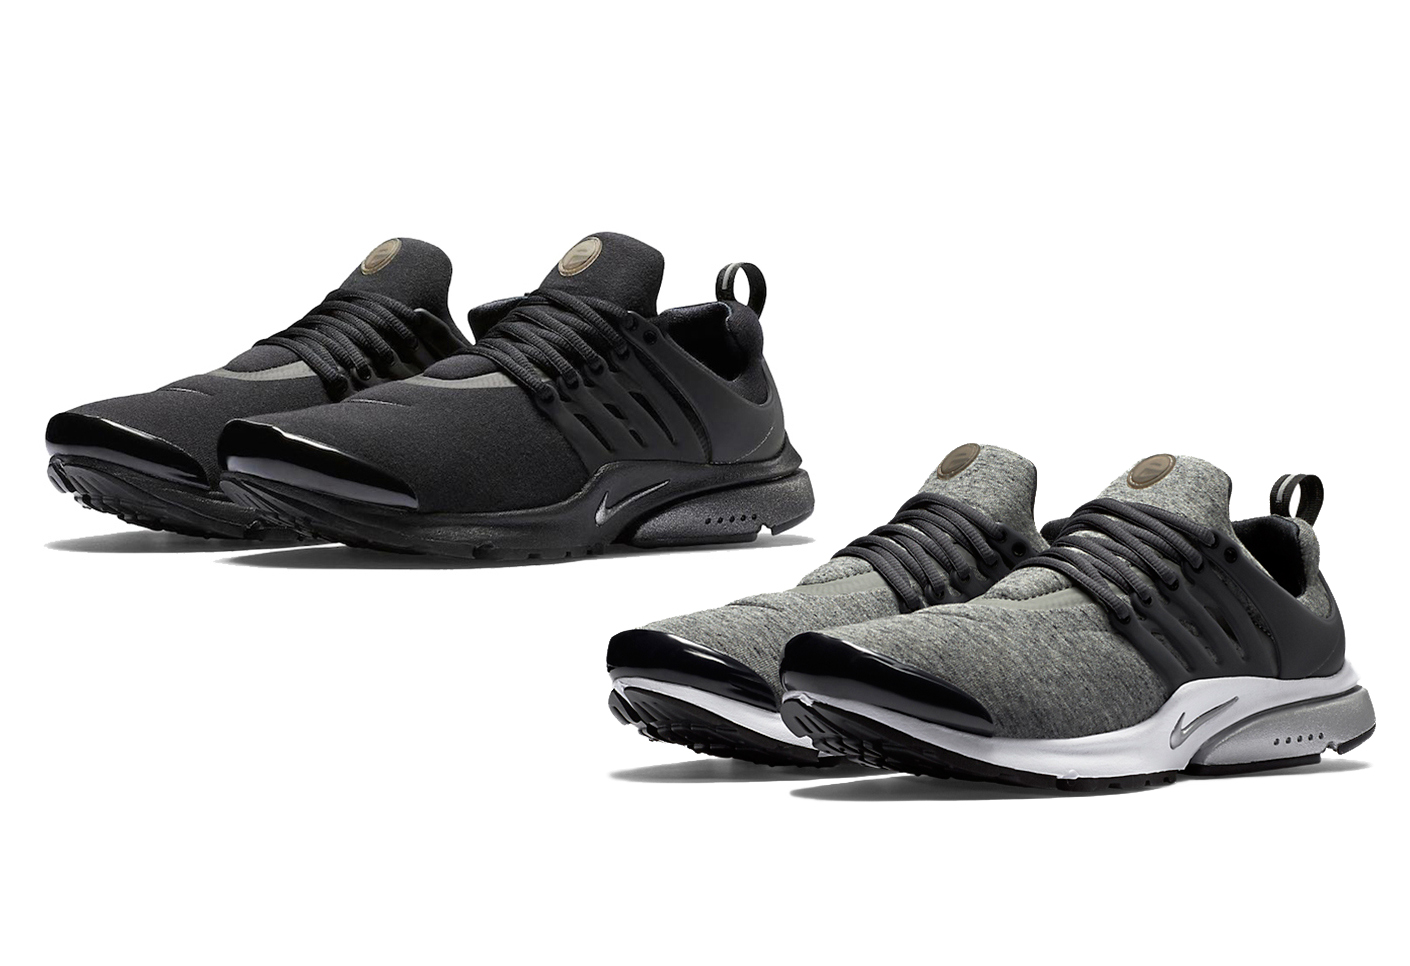 outlet store f9529 4bc37 Kicks Off Court   Nike   Retro Lifestyle   Runners ...